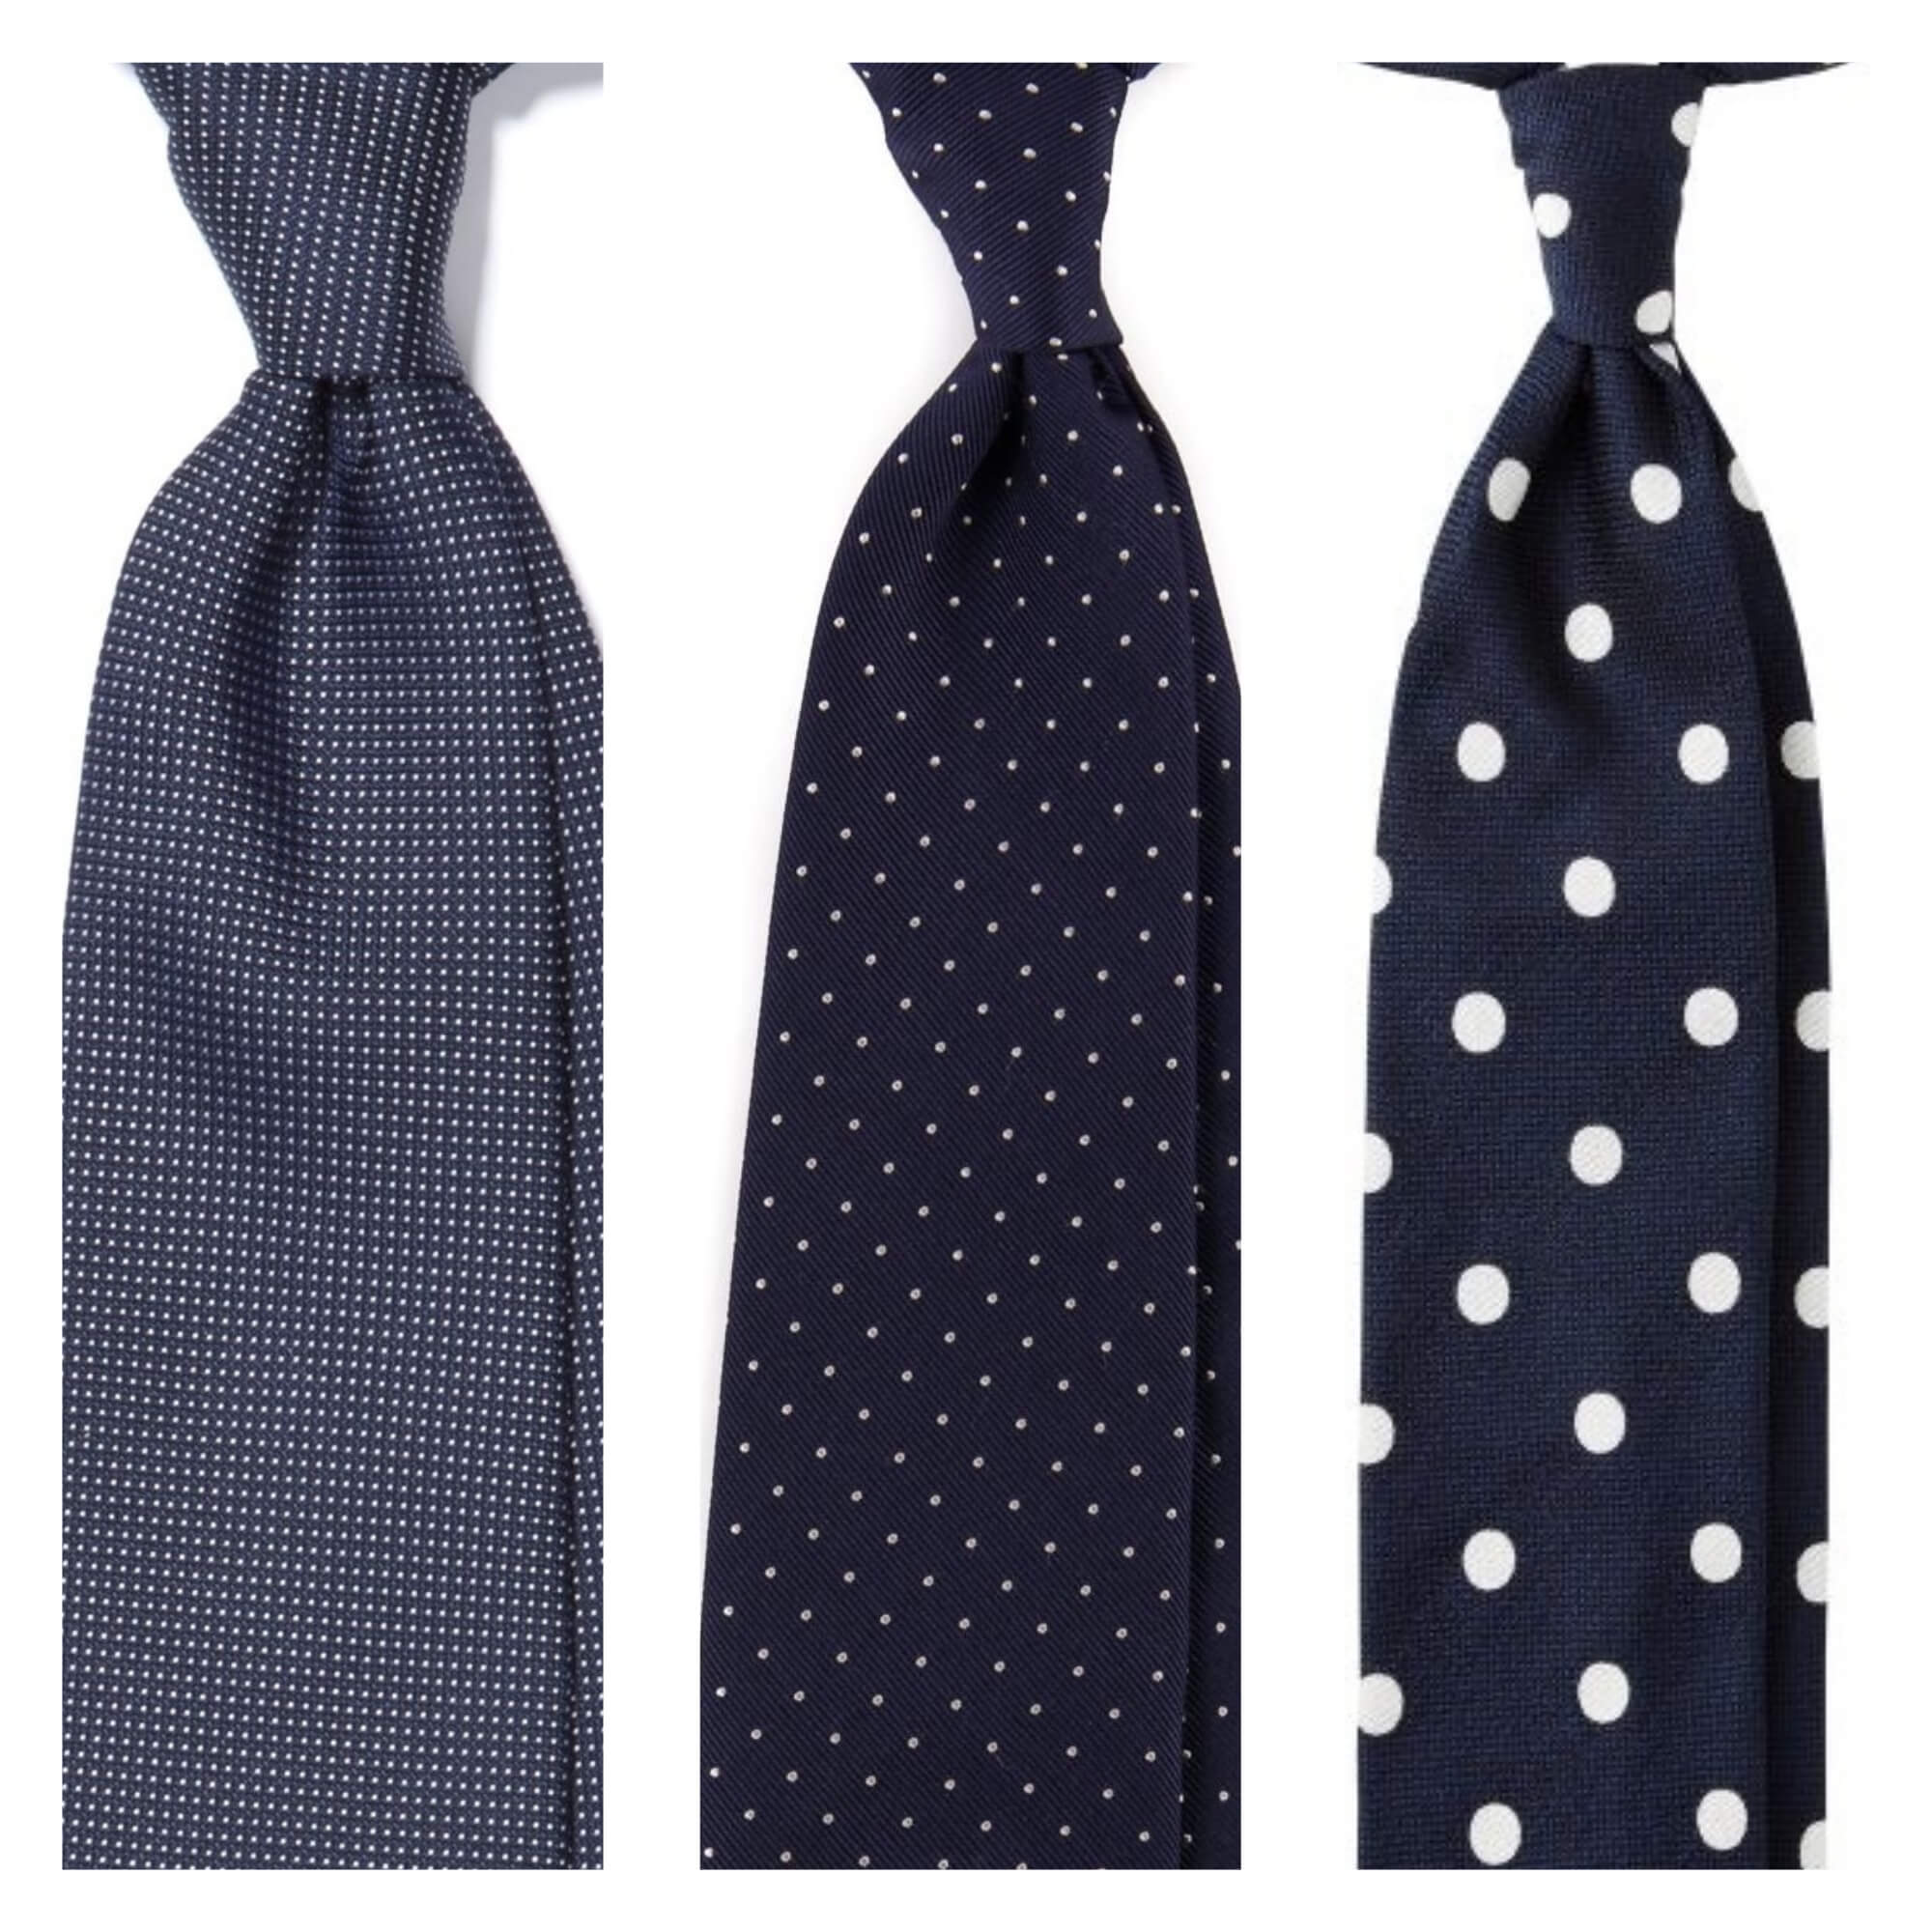 Bright Red with Textured Large Polka Dots Tie Set